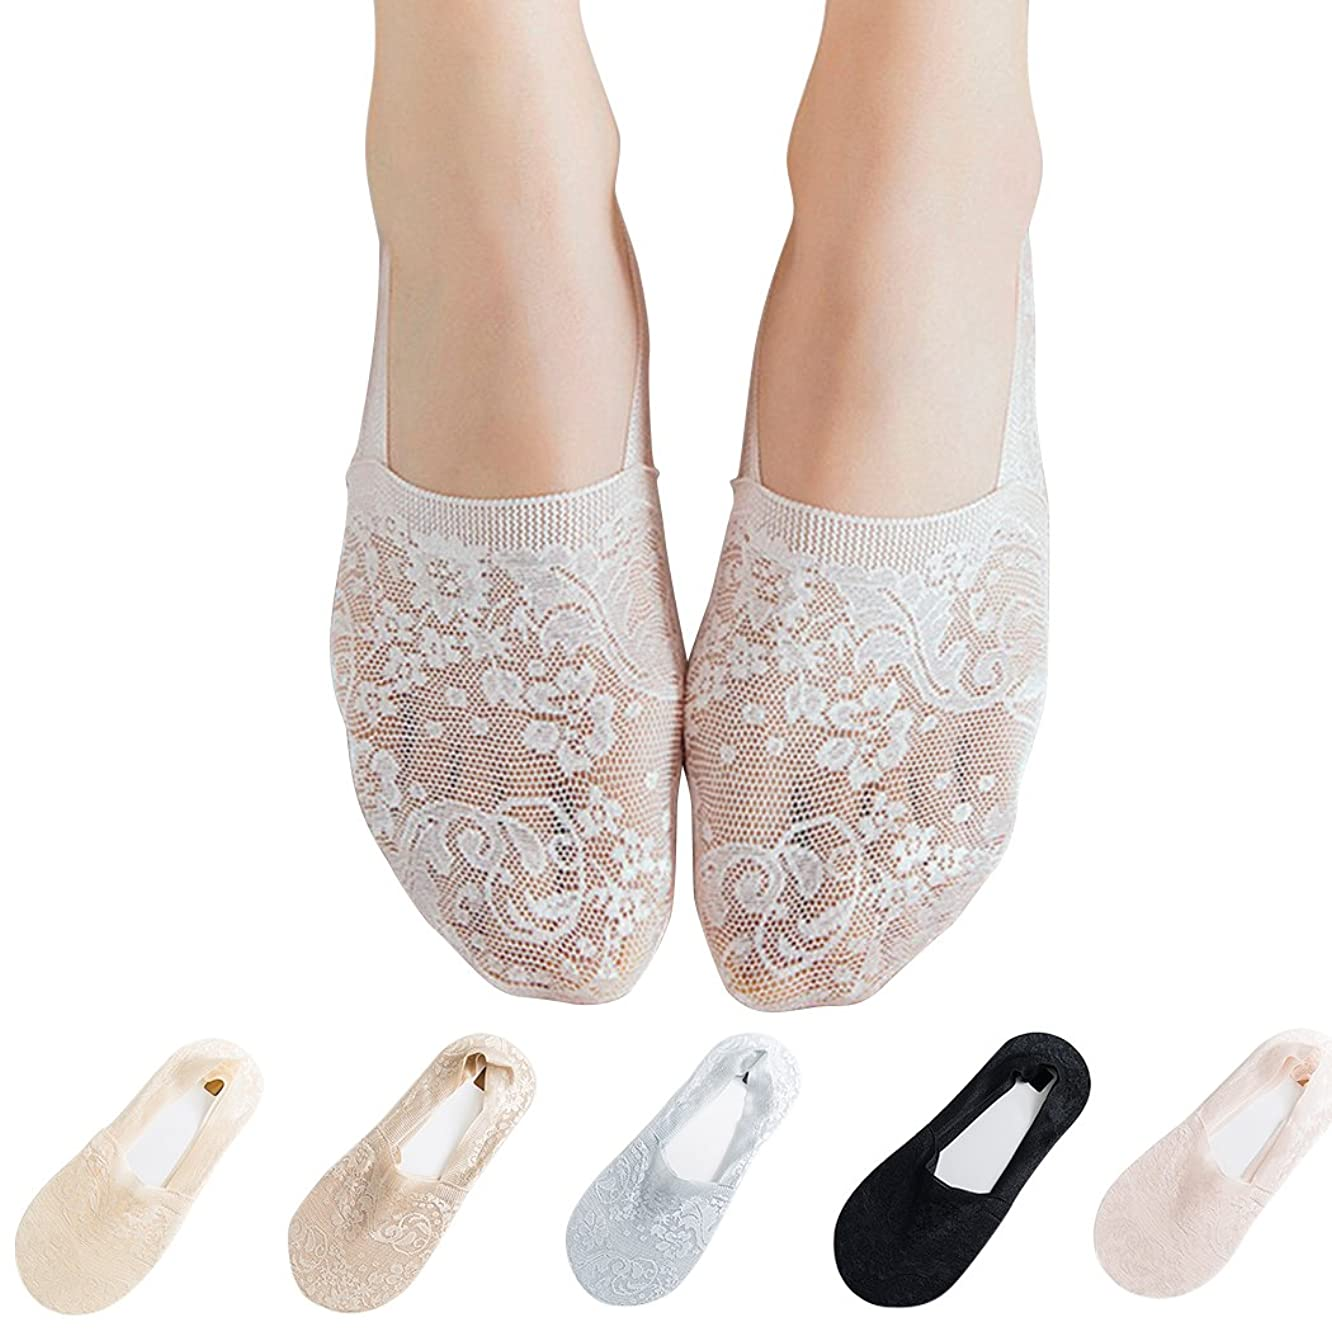 lifevv Womens 5 Pairs No Show Low Cut Cotton Lace Non Slip Socks (5 colors)